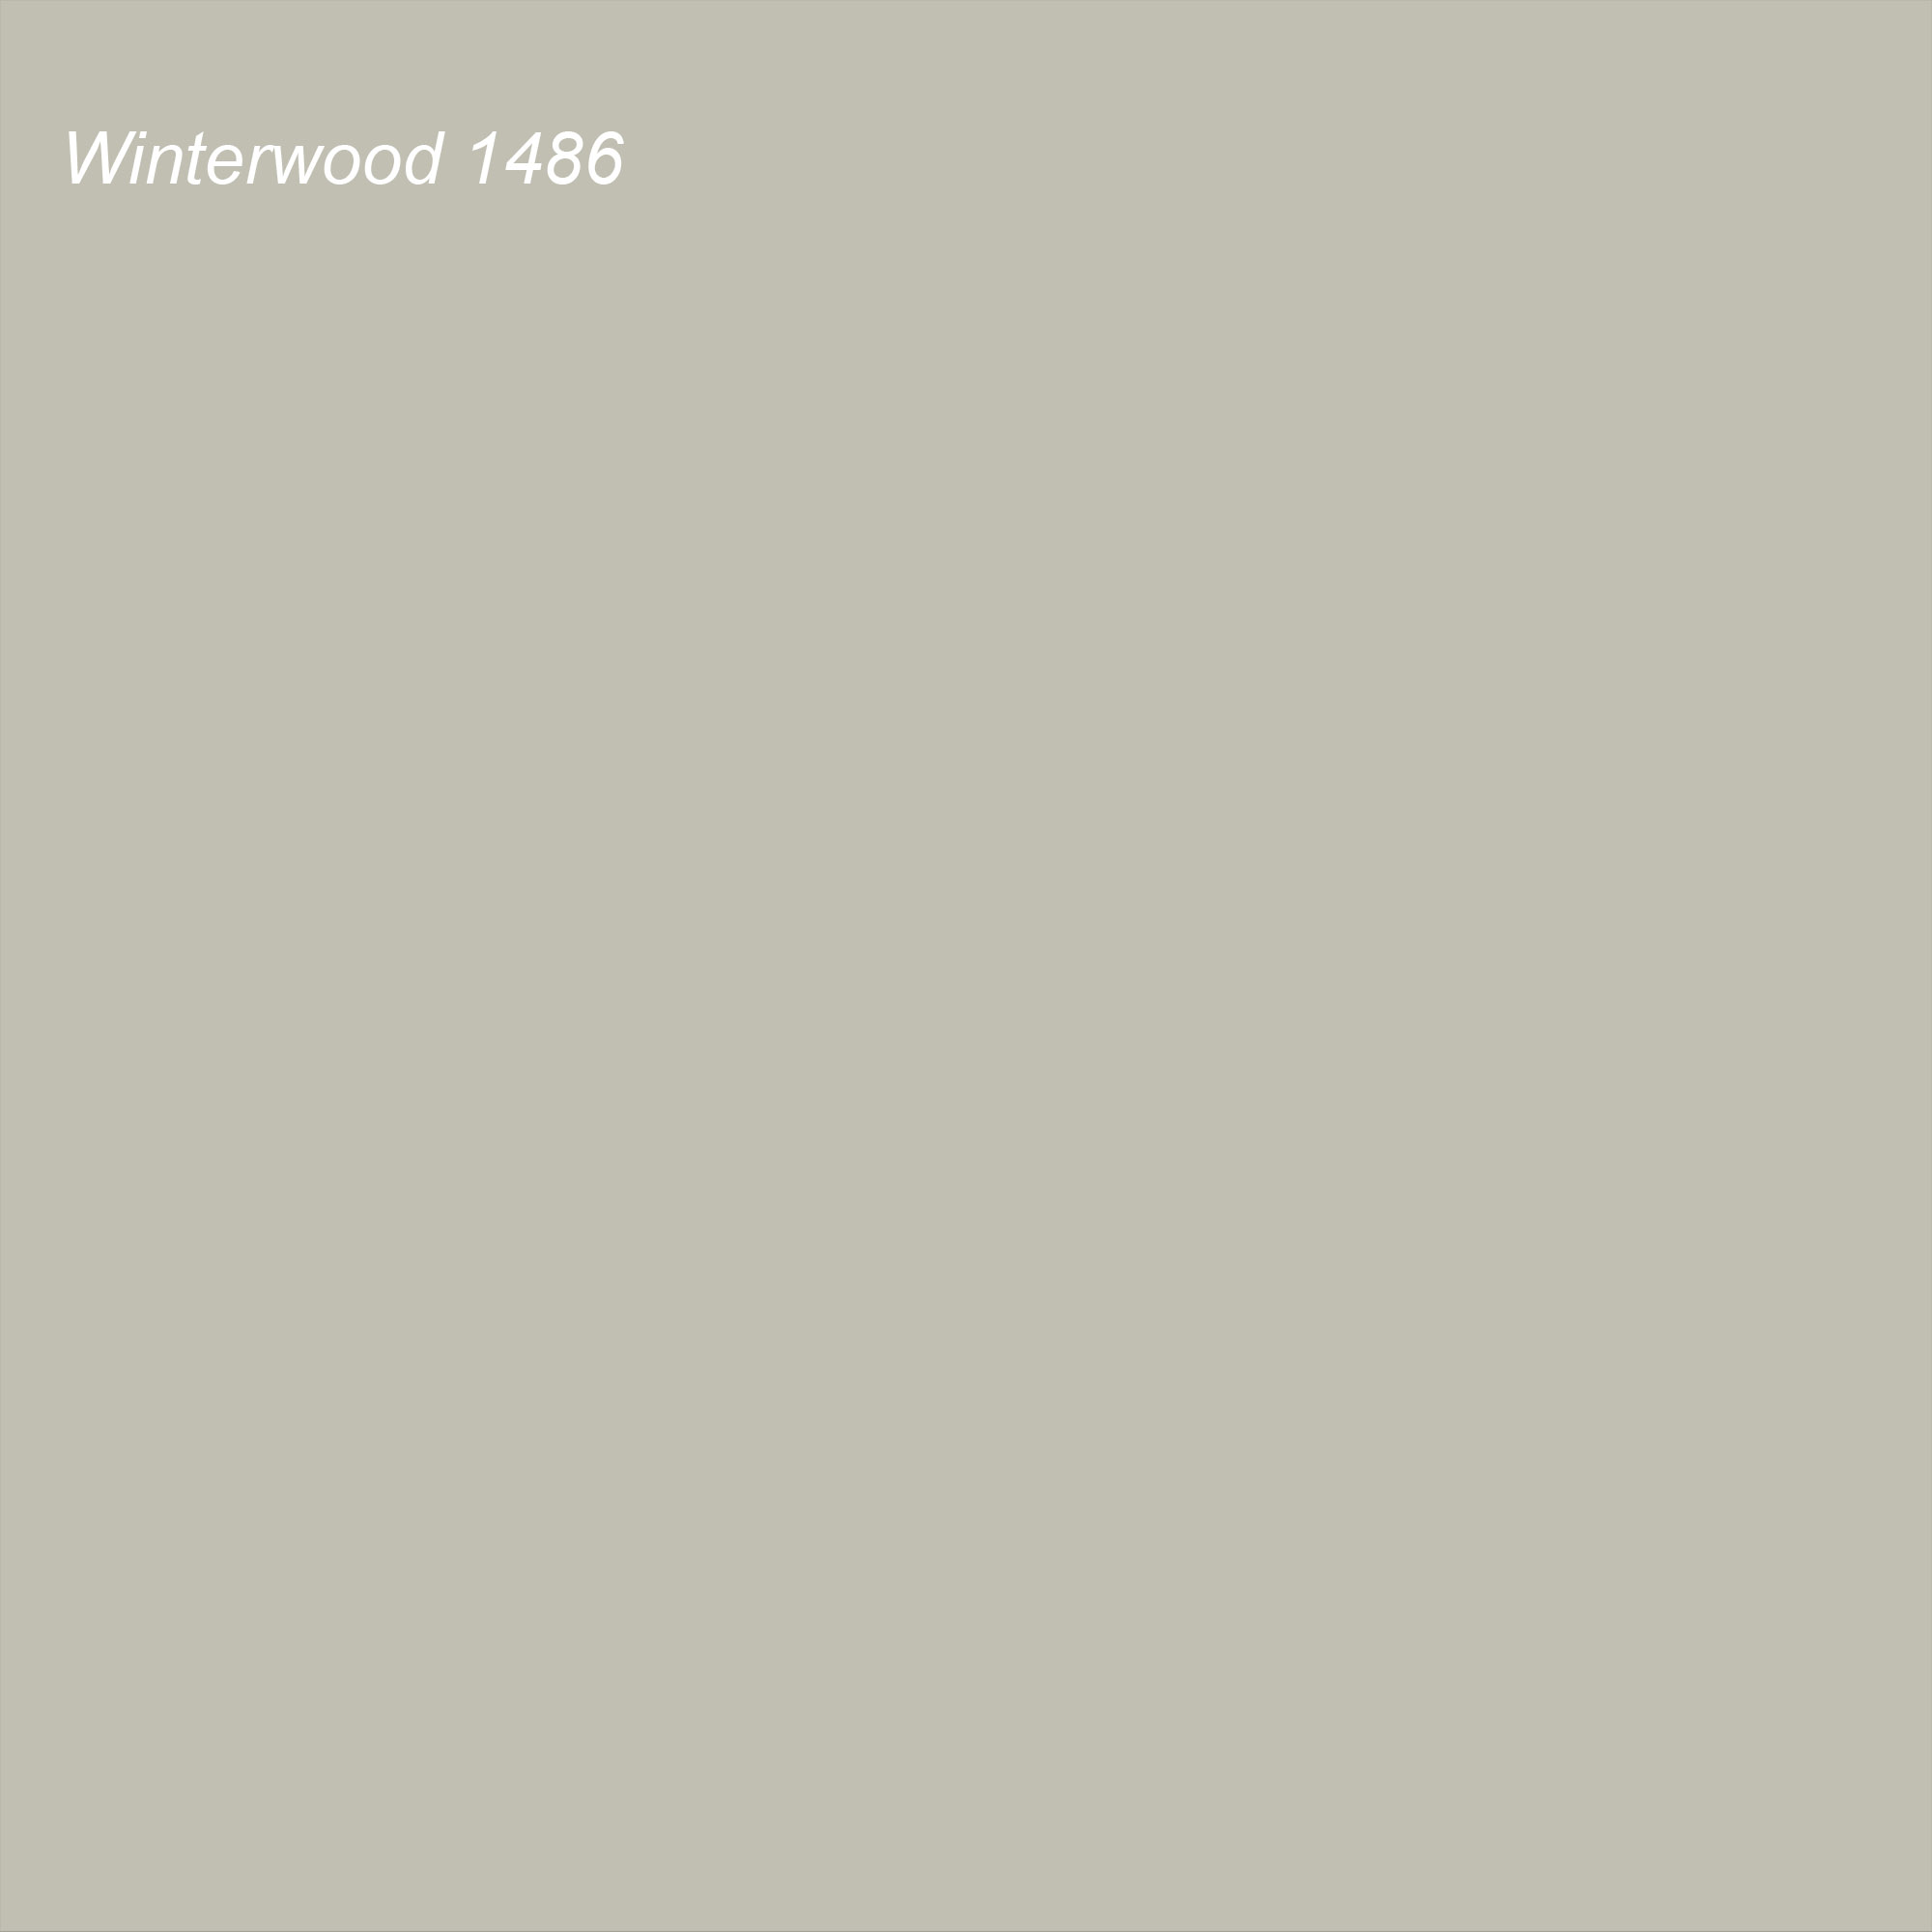 Benjamin Moore 2021 Color of the Year Suggested Accent Shade Winterwood 1486